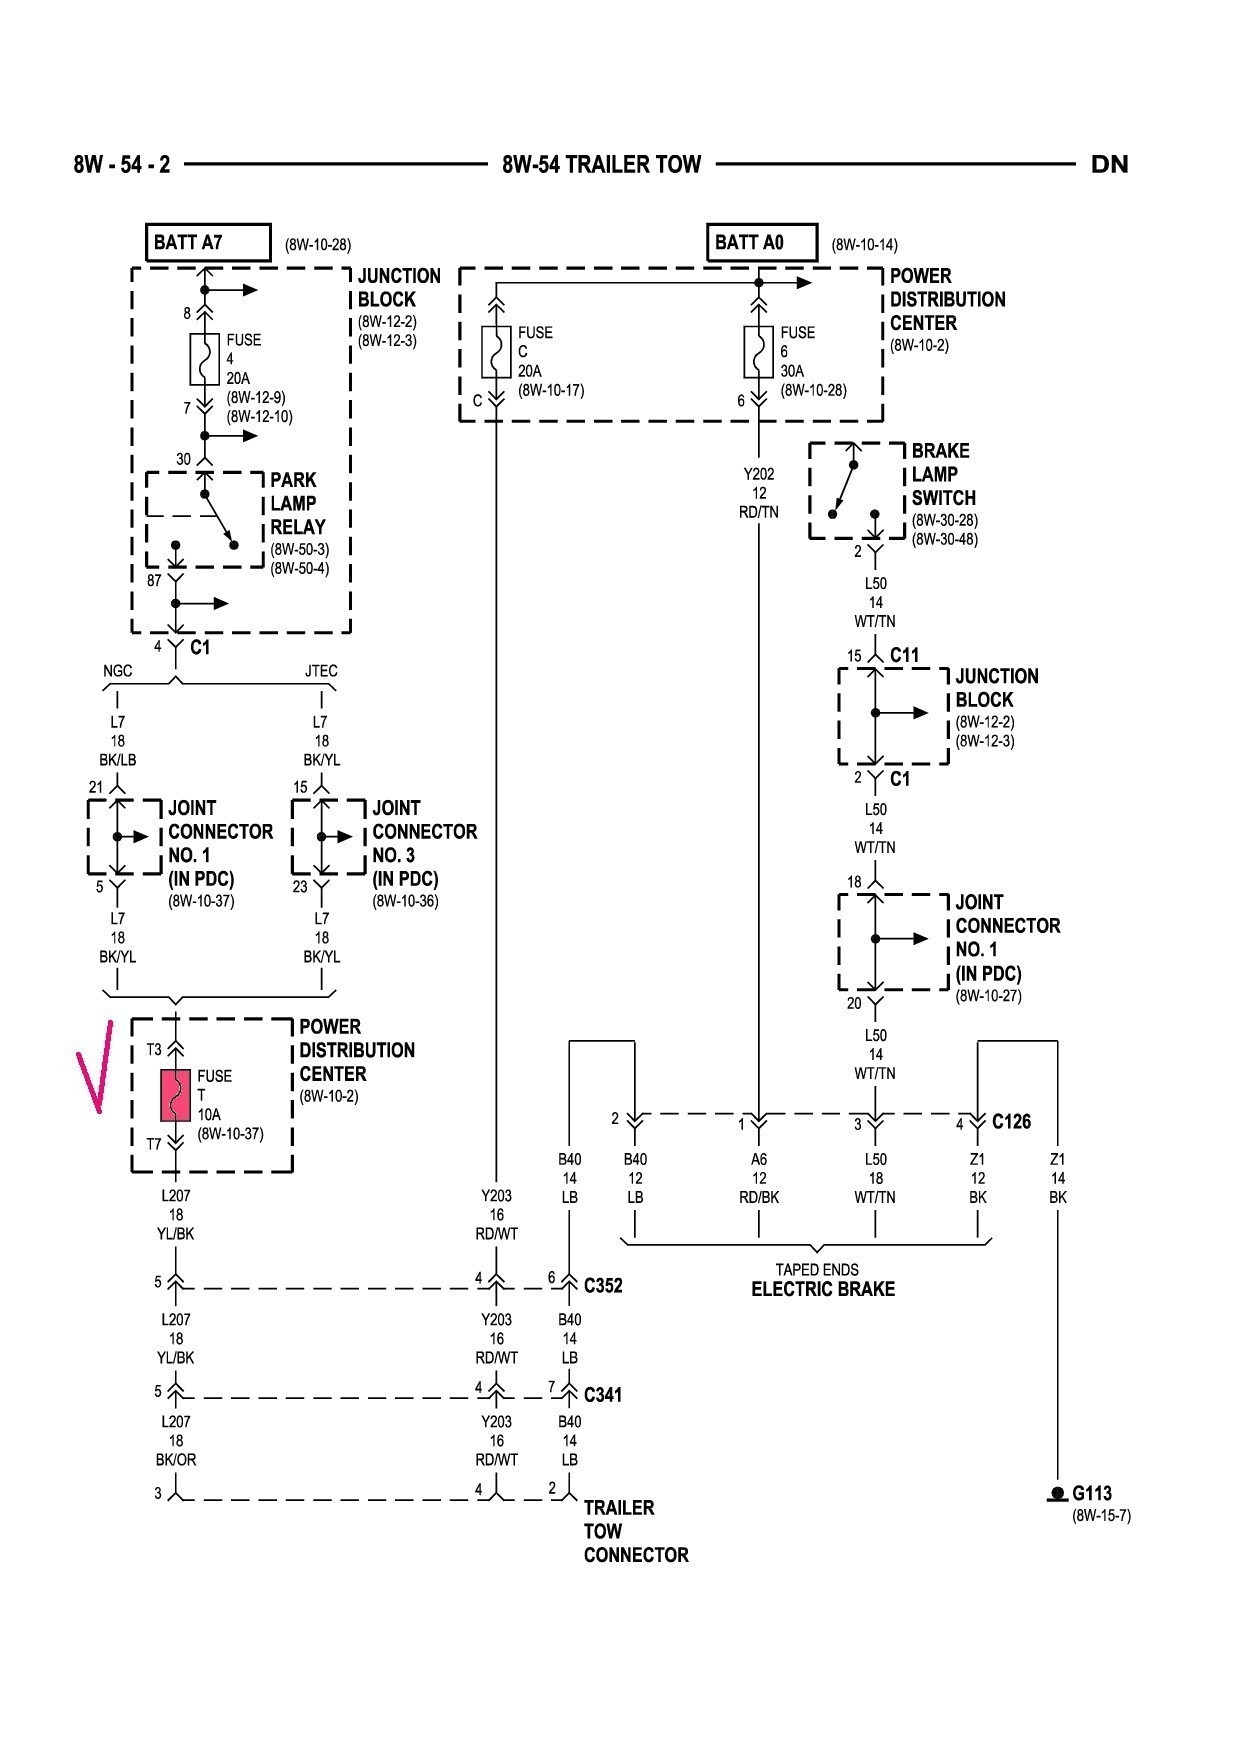 1998 dodge ram 1500 light wiring diagrams 2002 dodge ram 1500 light wiring diagram 1998 dodge dakota headlight switch wiring diagram | free wiring diagram